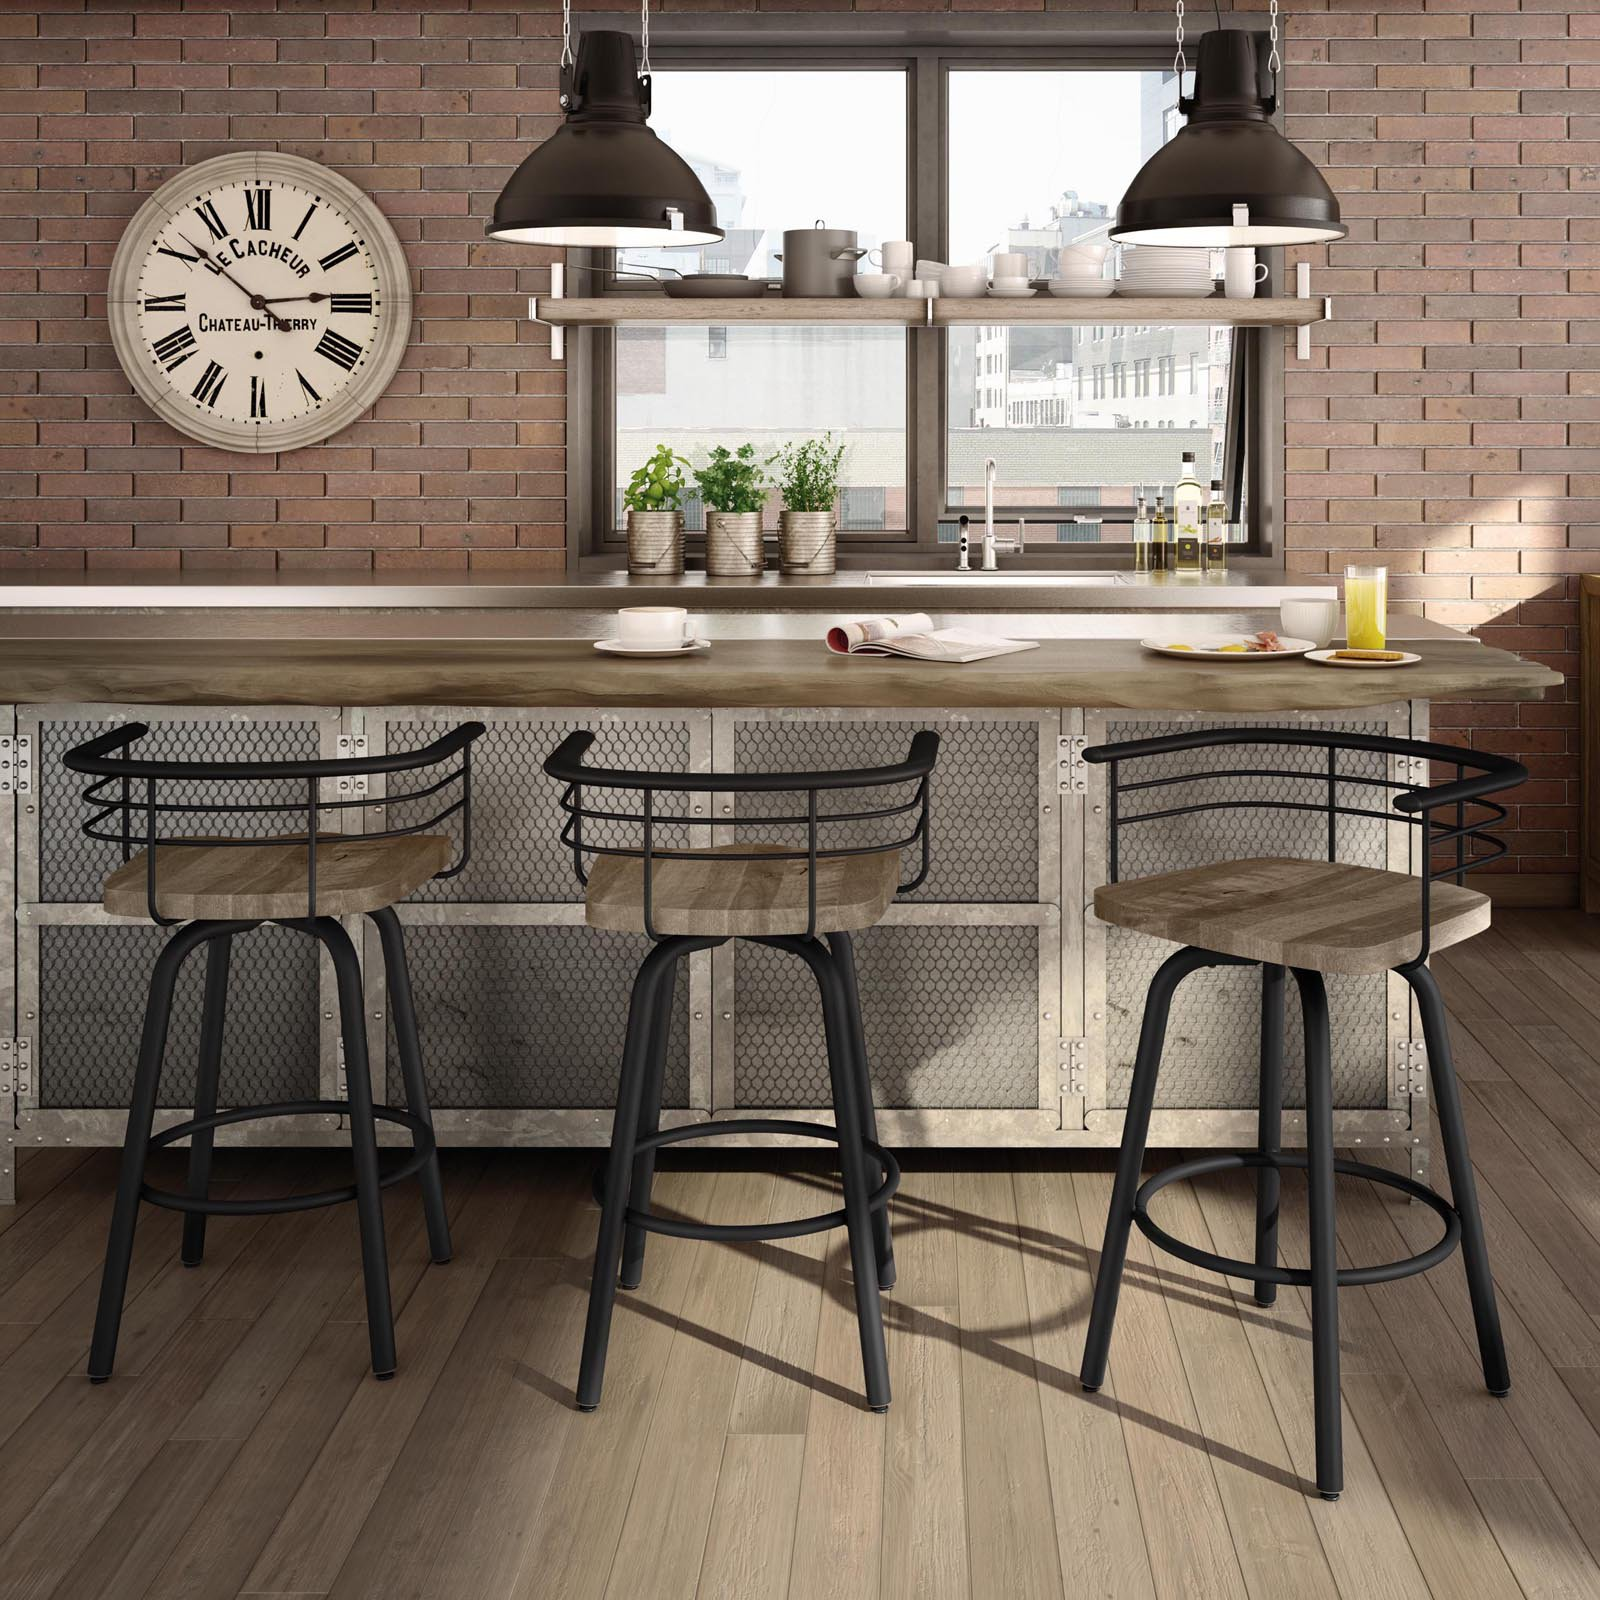 Amisco Brisk 26 in. Swivel Counter Stool